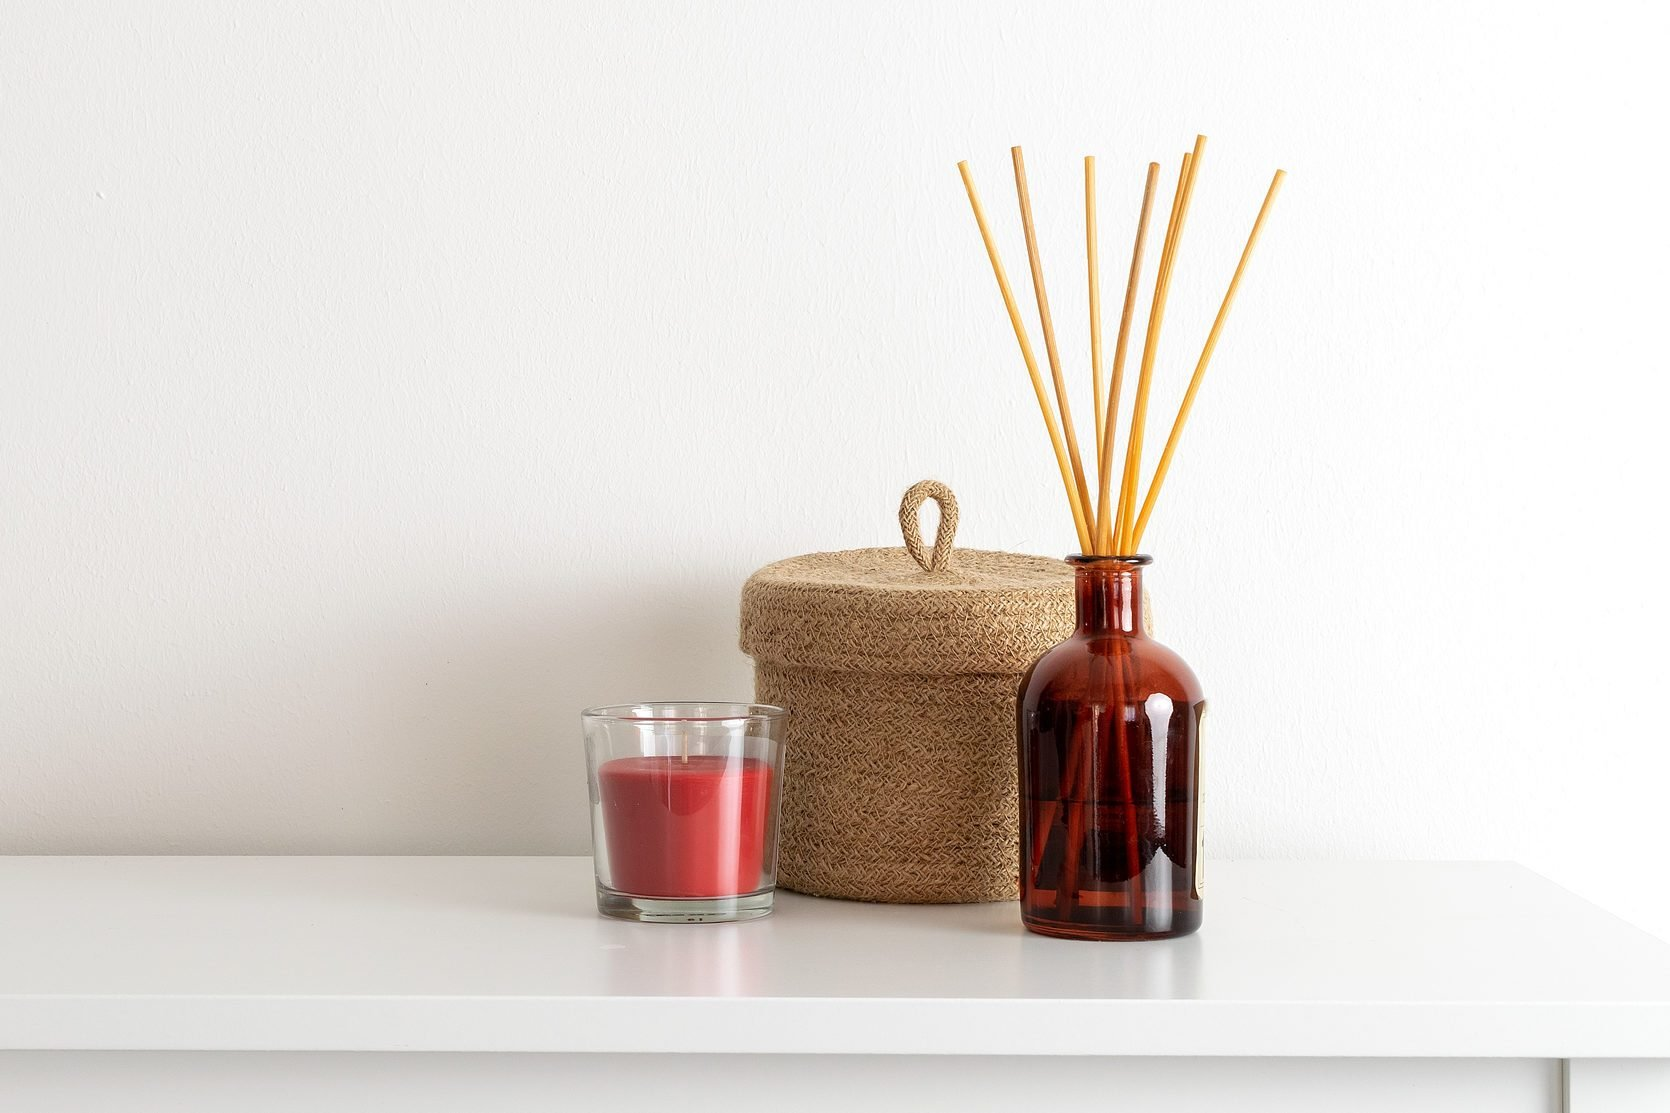 Trick To Make Your Home Smell Amazing